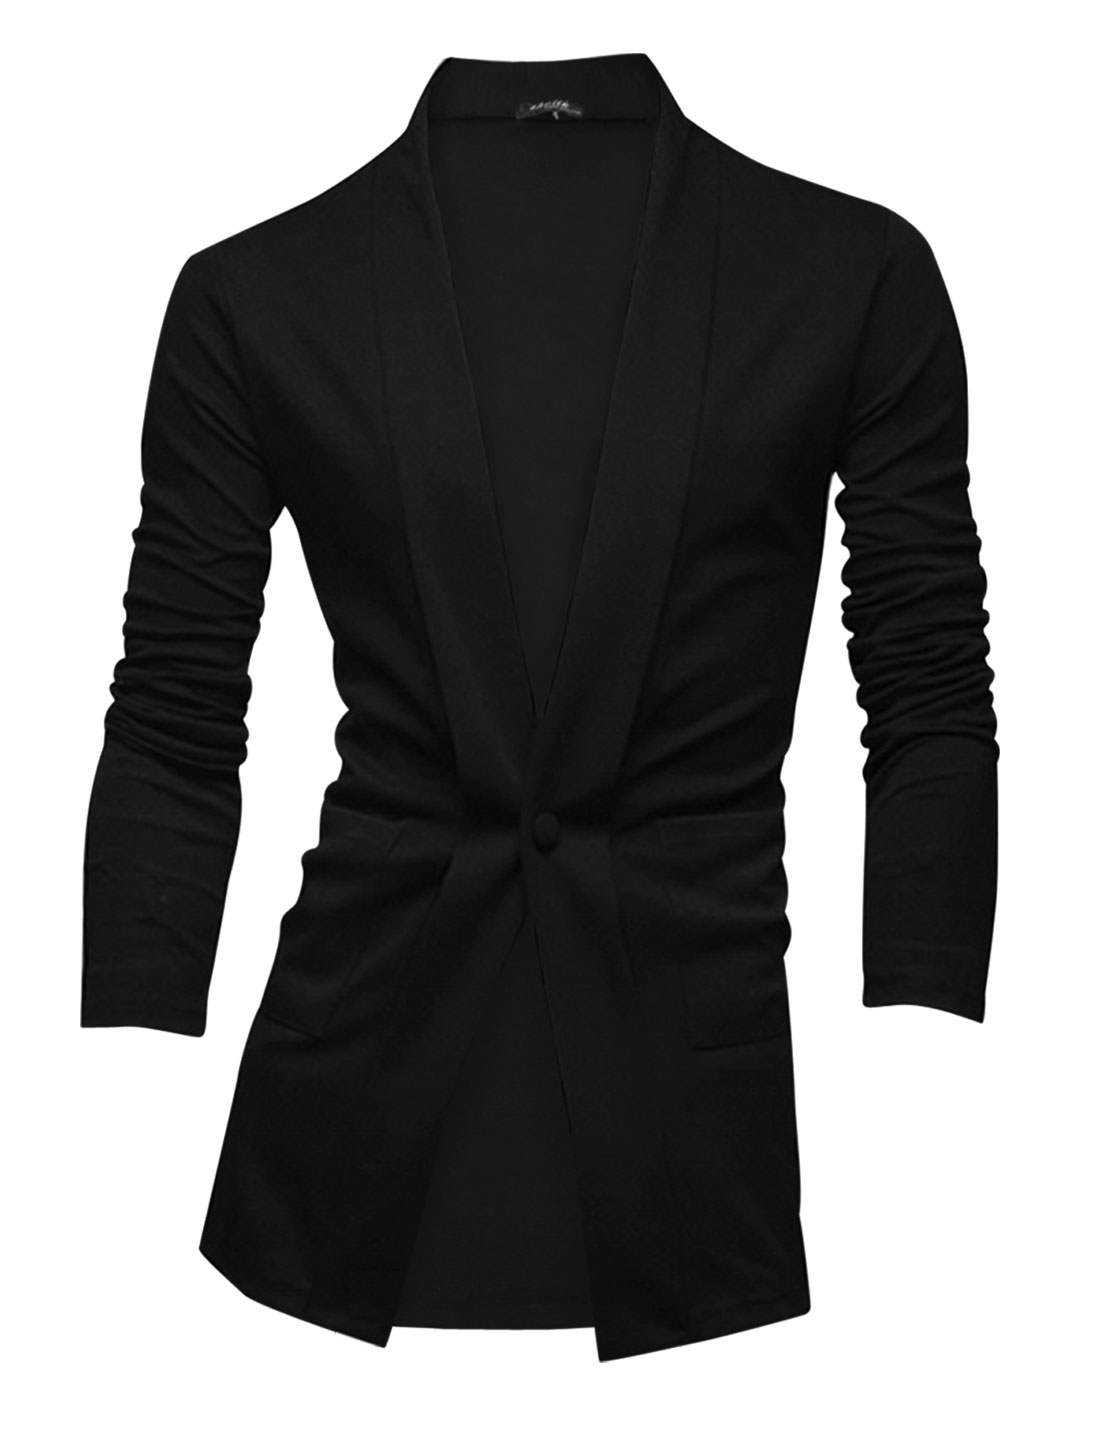 Men Shawl Lapel Two Patch Pockets Front Fashion Casual Blazer Black M